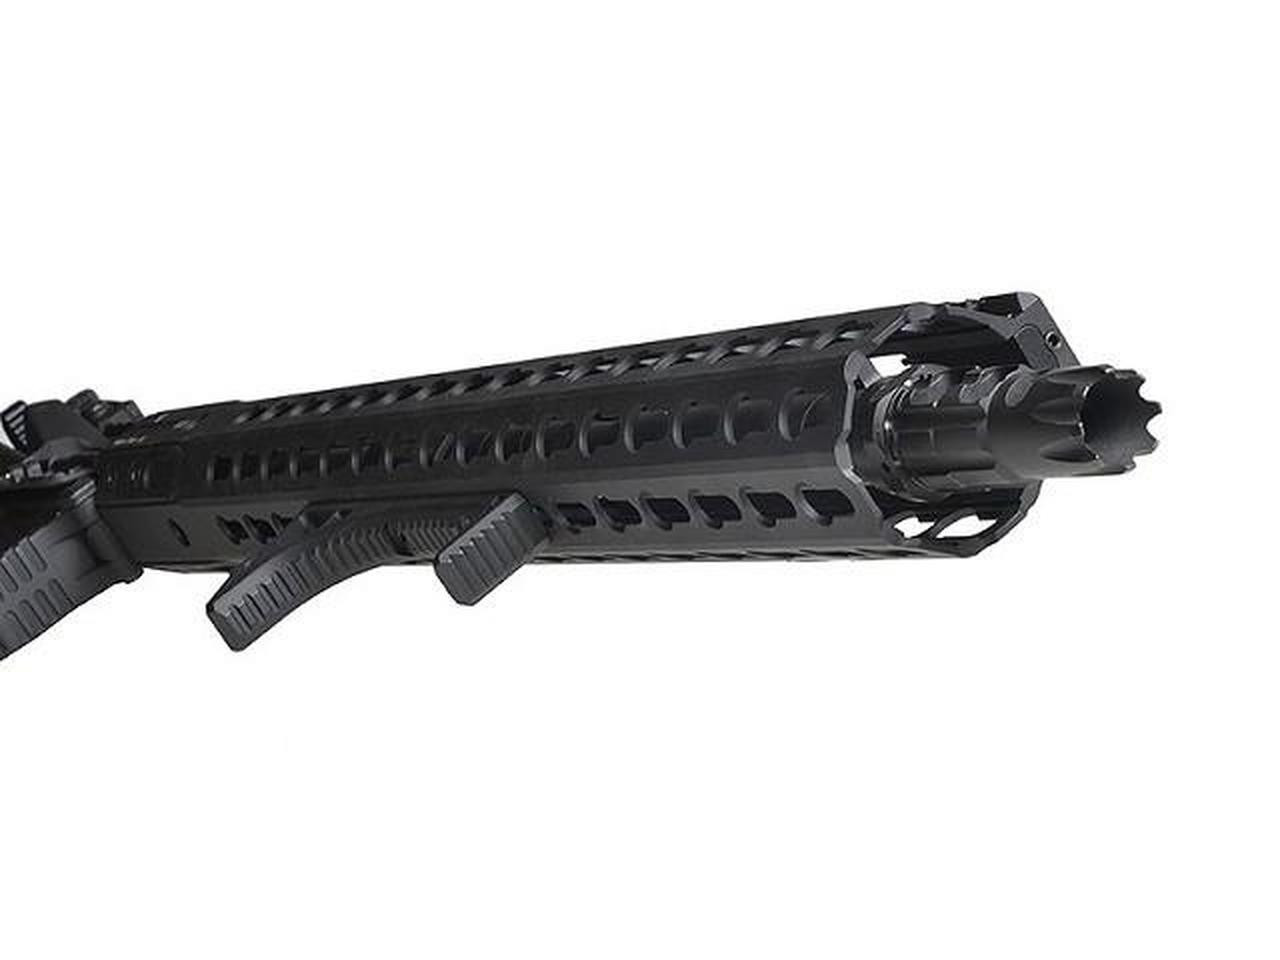 Curved Foregrip Forward Grip Keymod - Black (AS-ACFG1272) installed